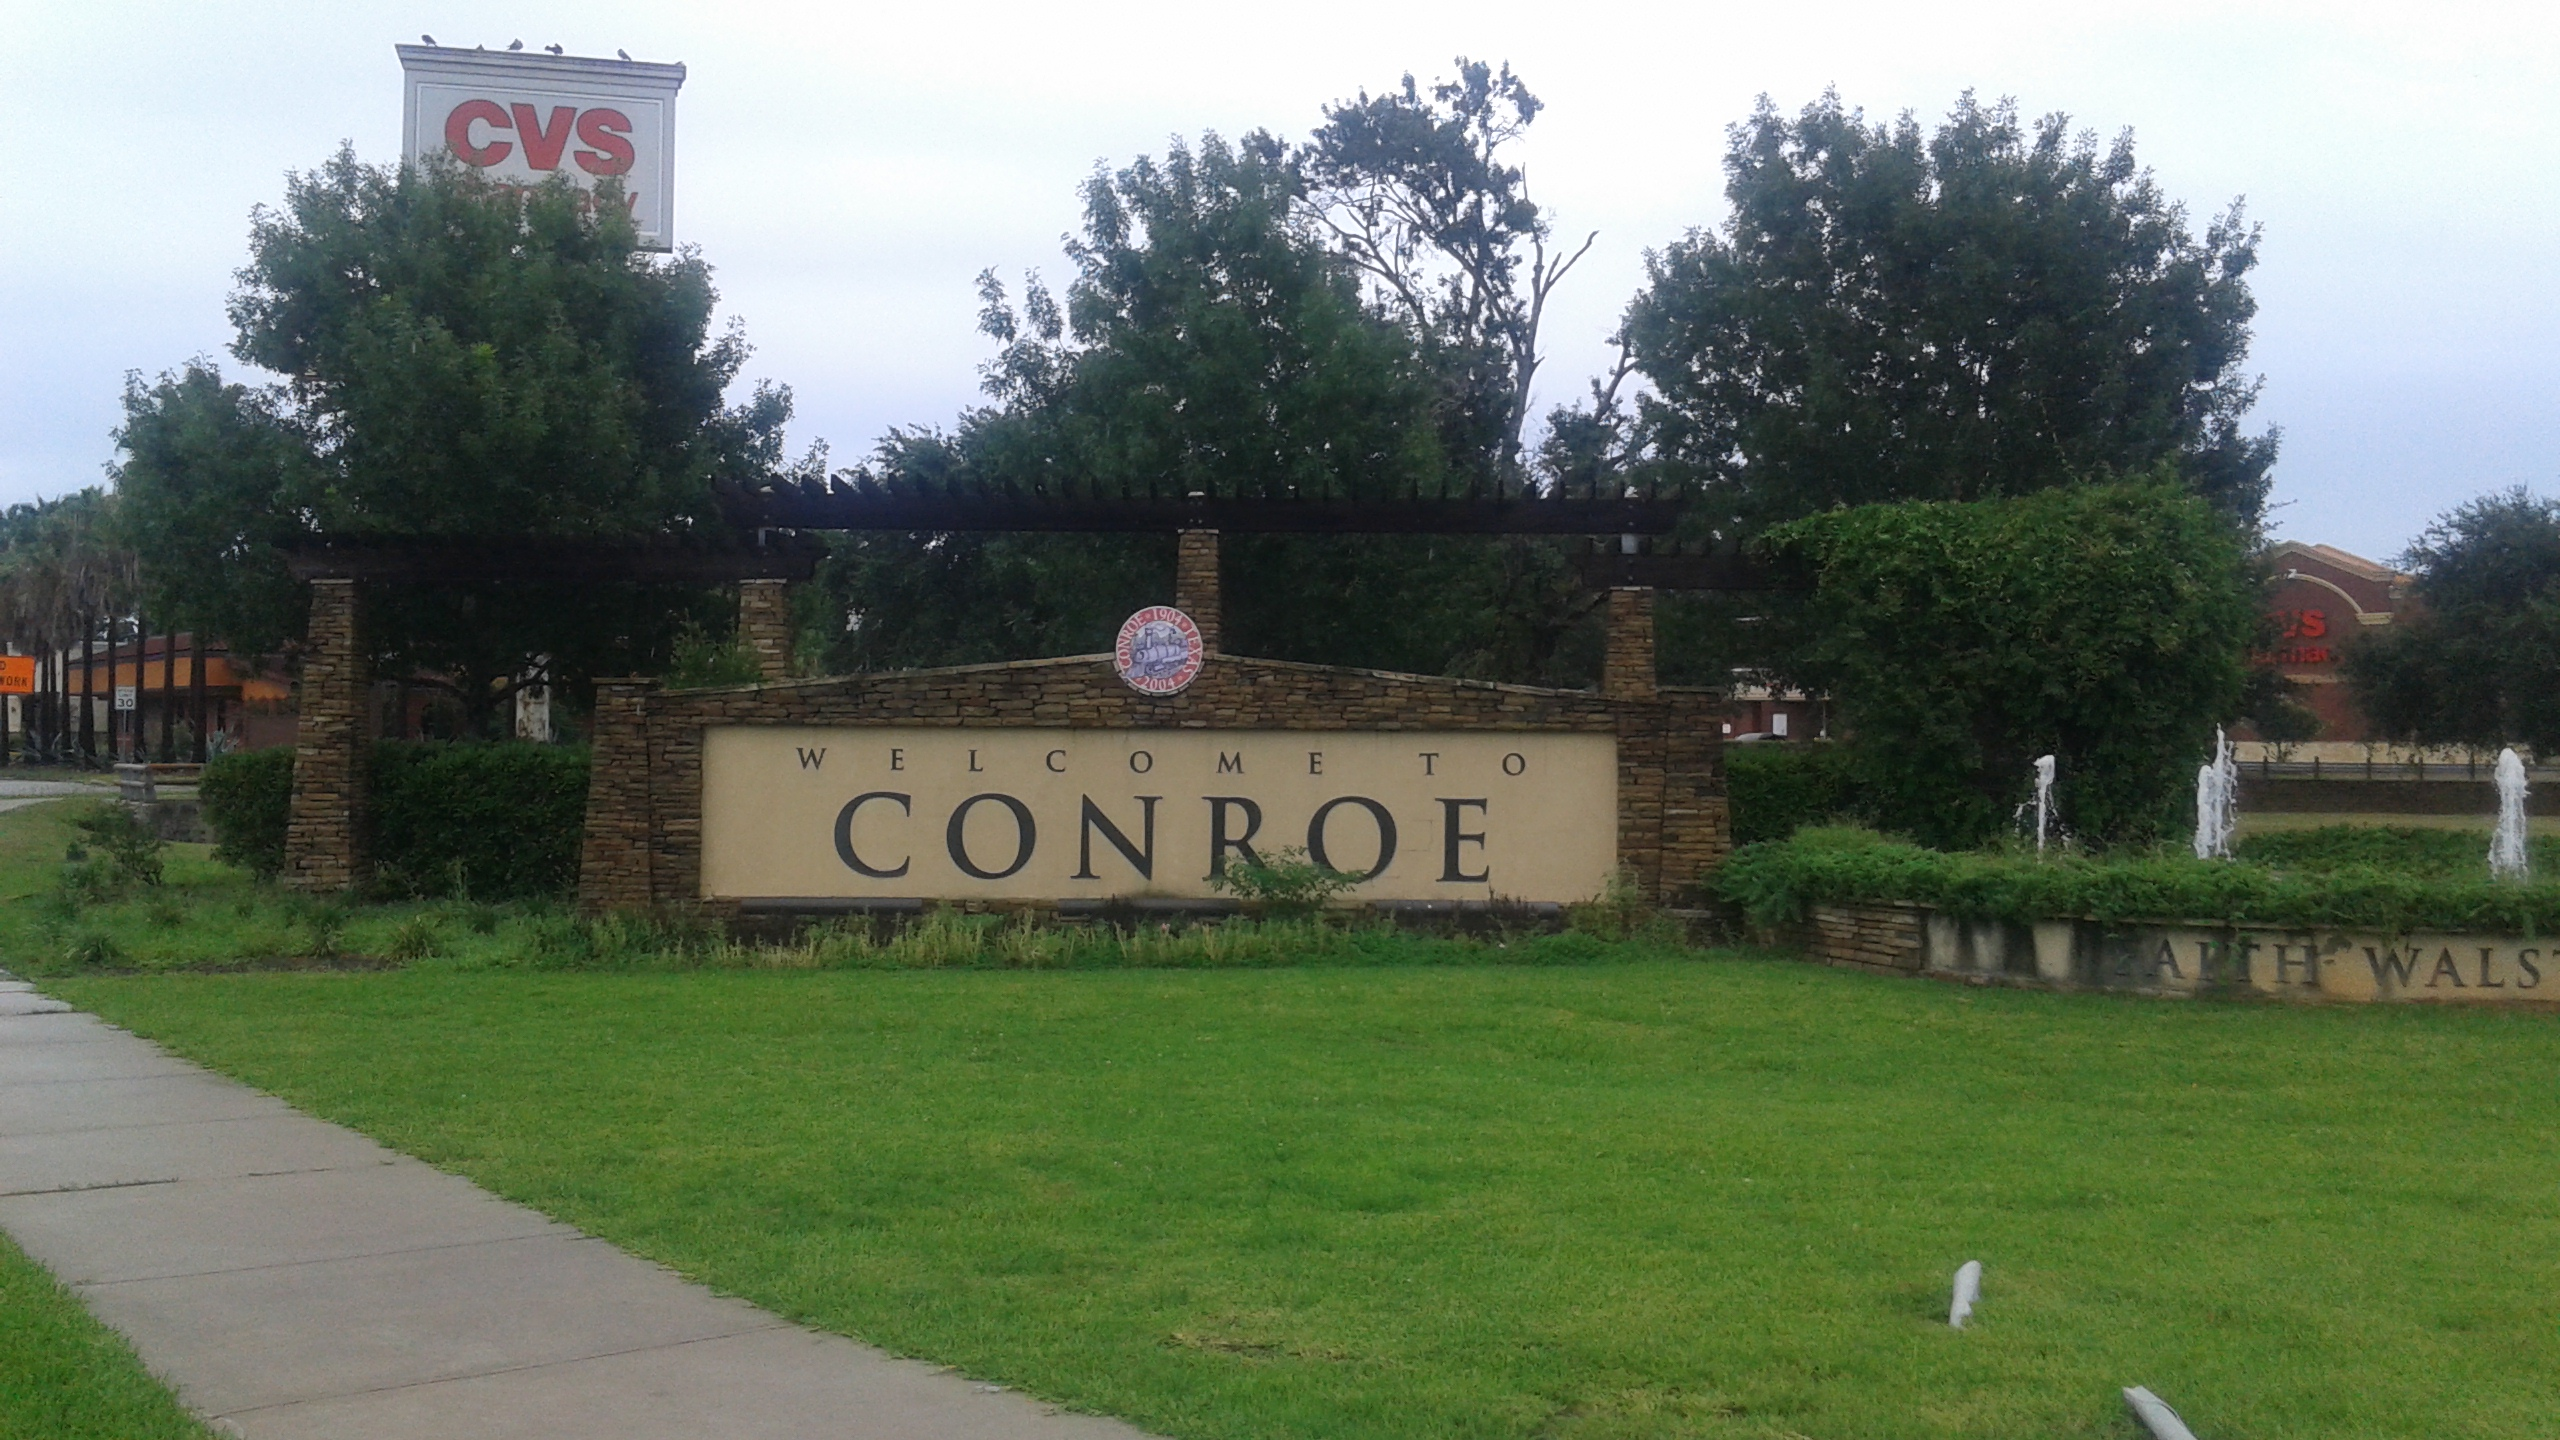 Conroe dating sites